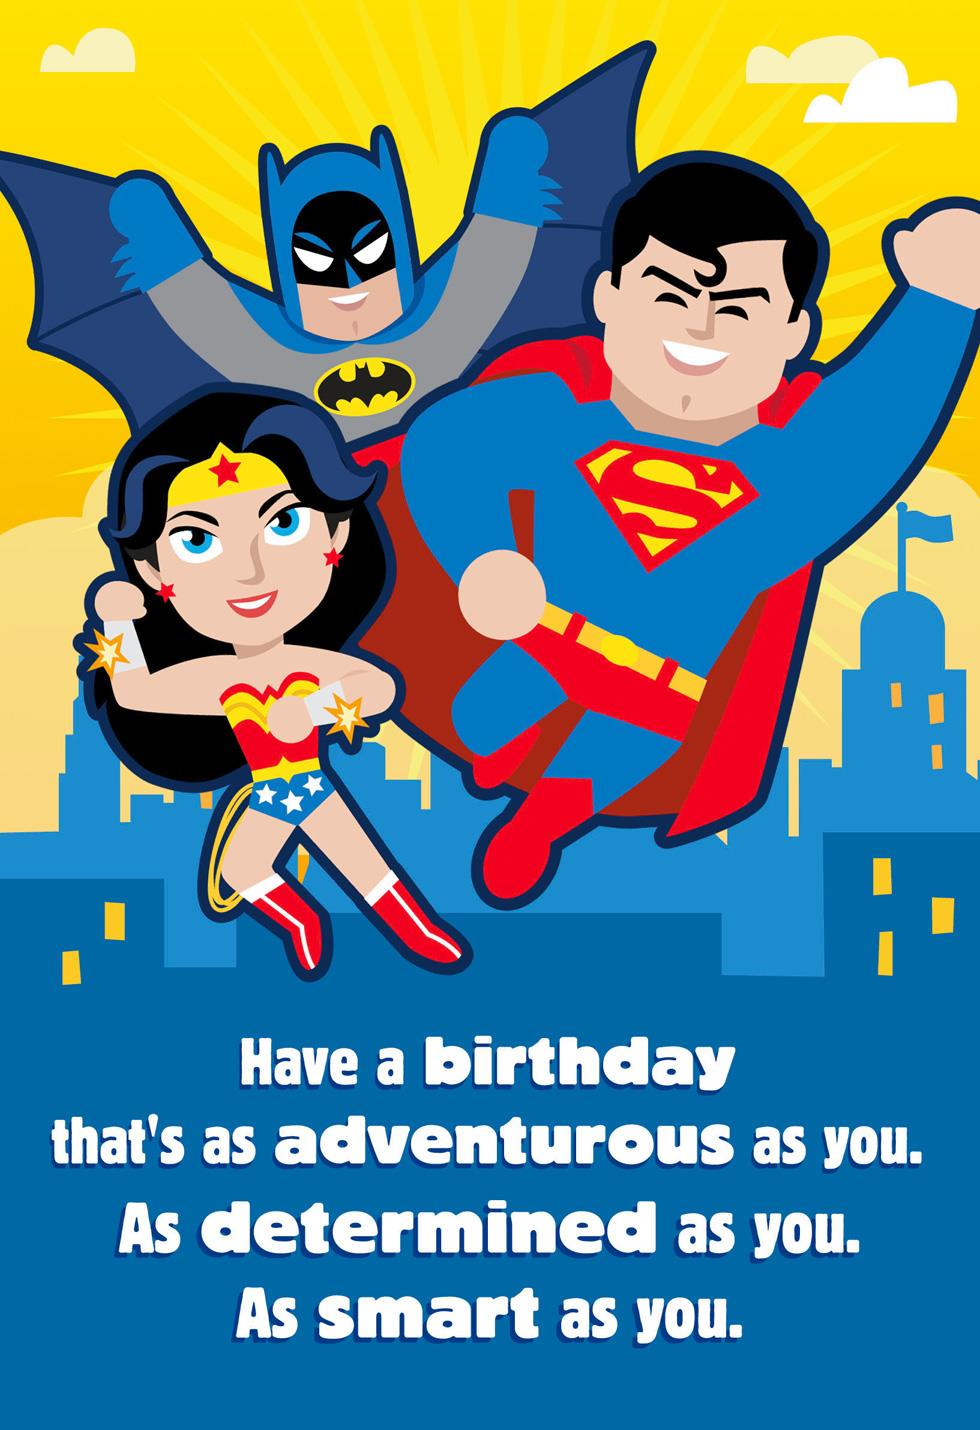 justice league u2122 as adventurous as you musical birthday